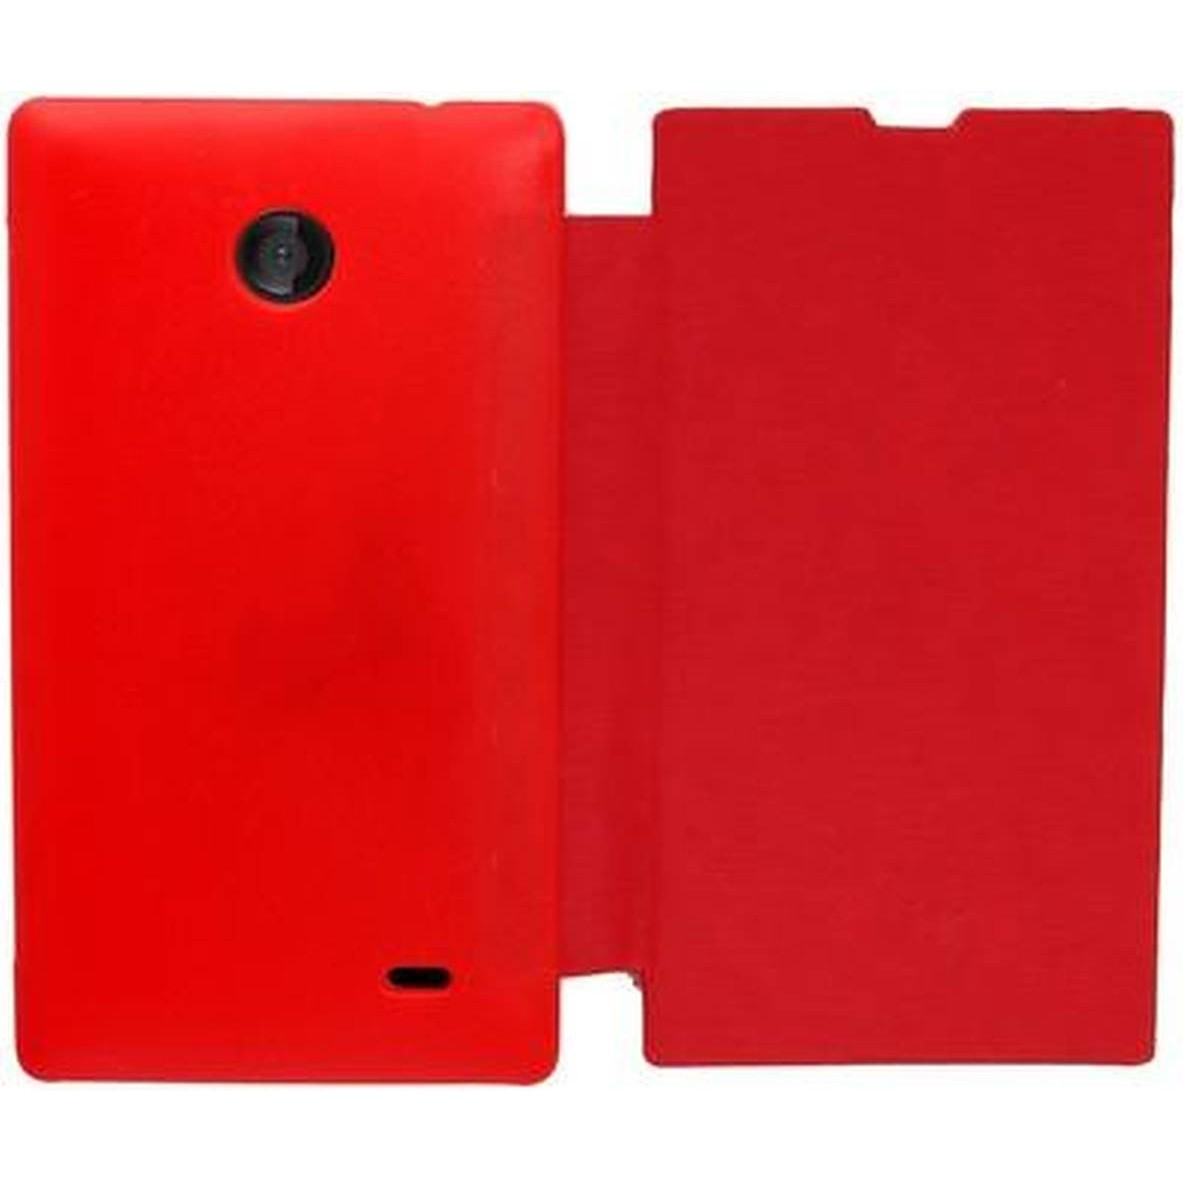 huge selection of 7d655 c4e68 Flip Cover for Nokia X Dual SIM RM-980 - Red